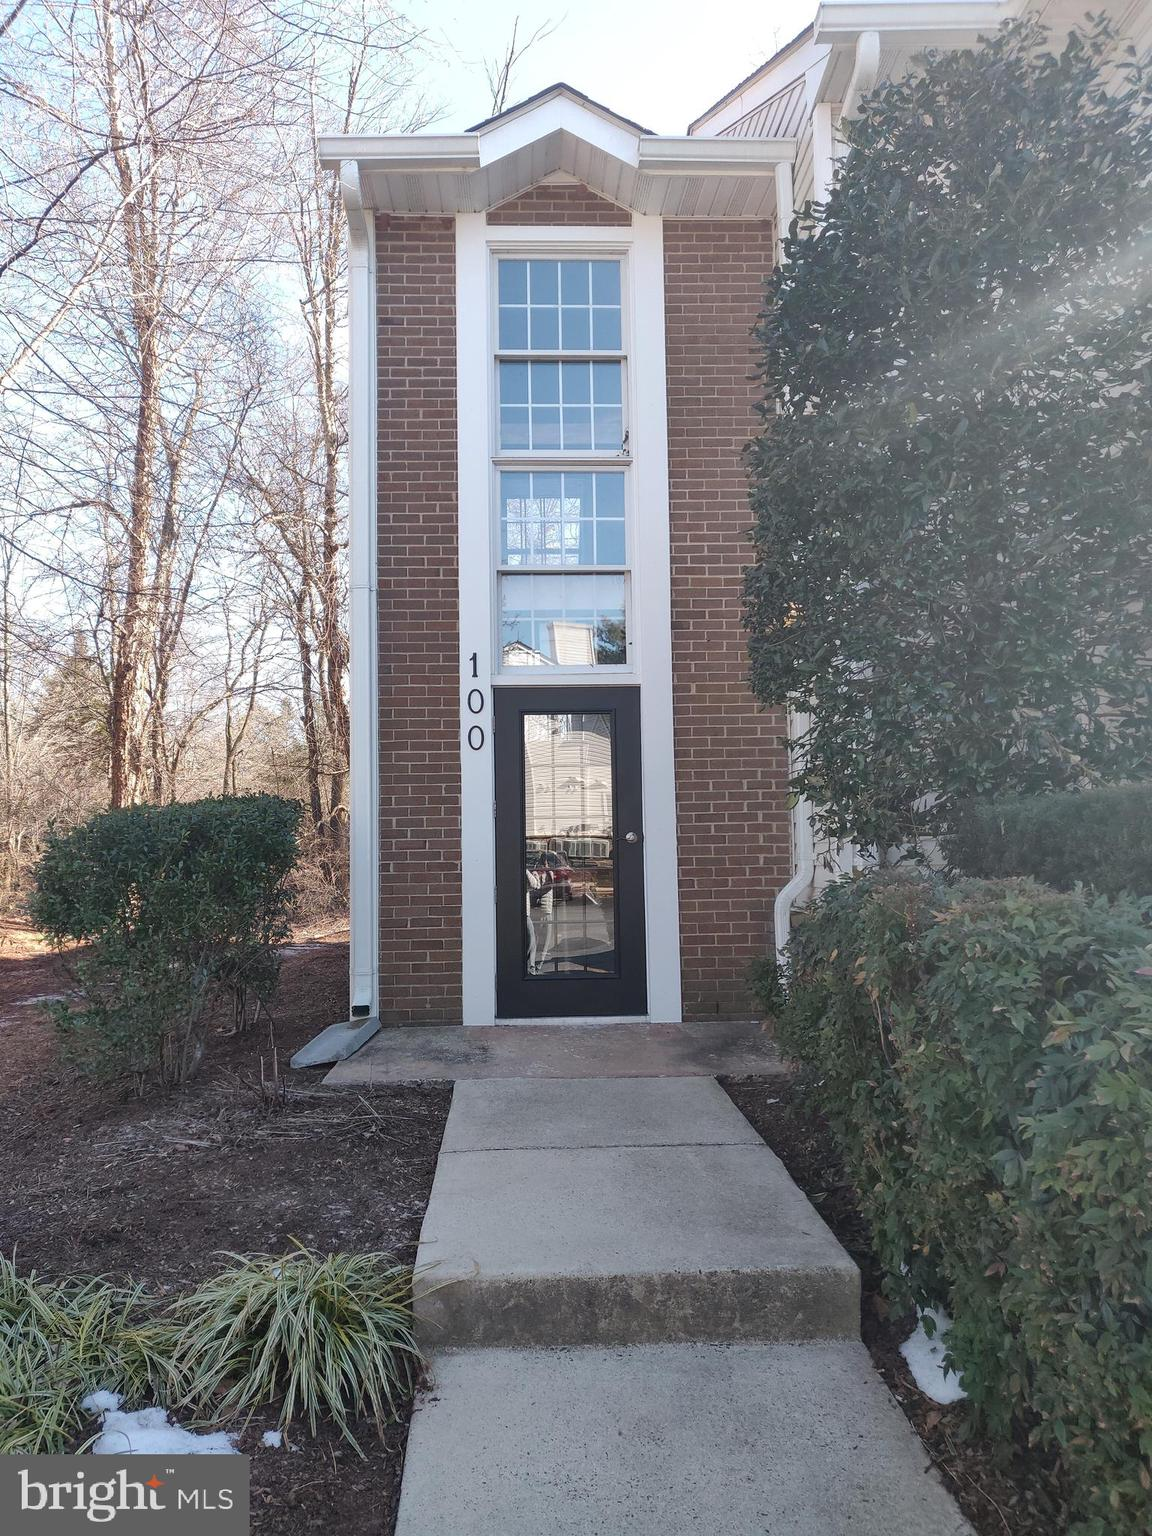 PENDING RELEASE - Nice 1st floor condo close to everything. Fully equipped kitchen, bamboo flooring all over and beautiful tile at kitchen and bath. Enjoy your private patio in the back and no buildings in the back.  Laundry closet with full size W/D.  Use the community picnic area, trails, pools, Etc. Close to Dulles Town Center and blocks to  Route 28 and Route 7.